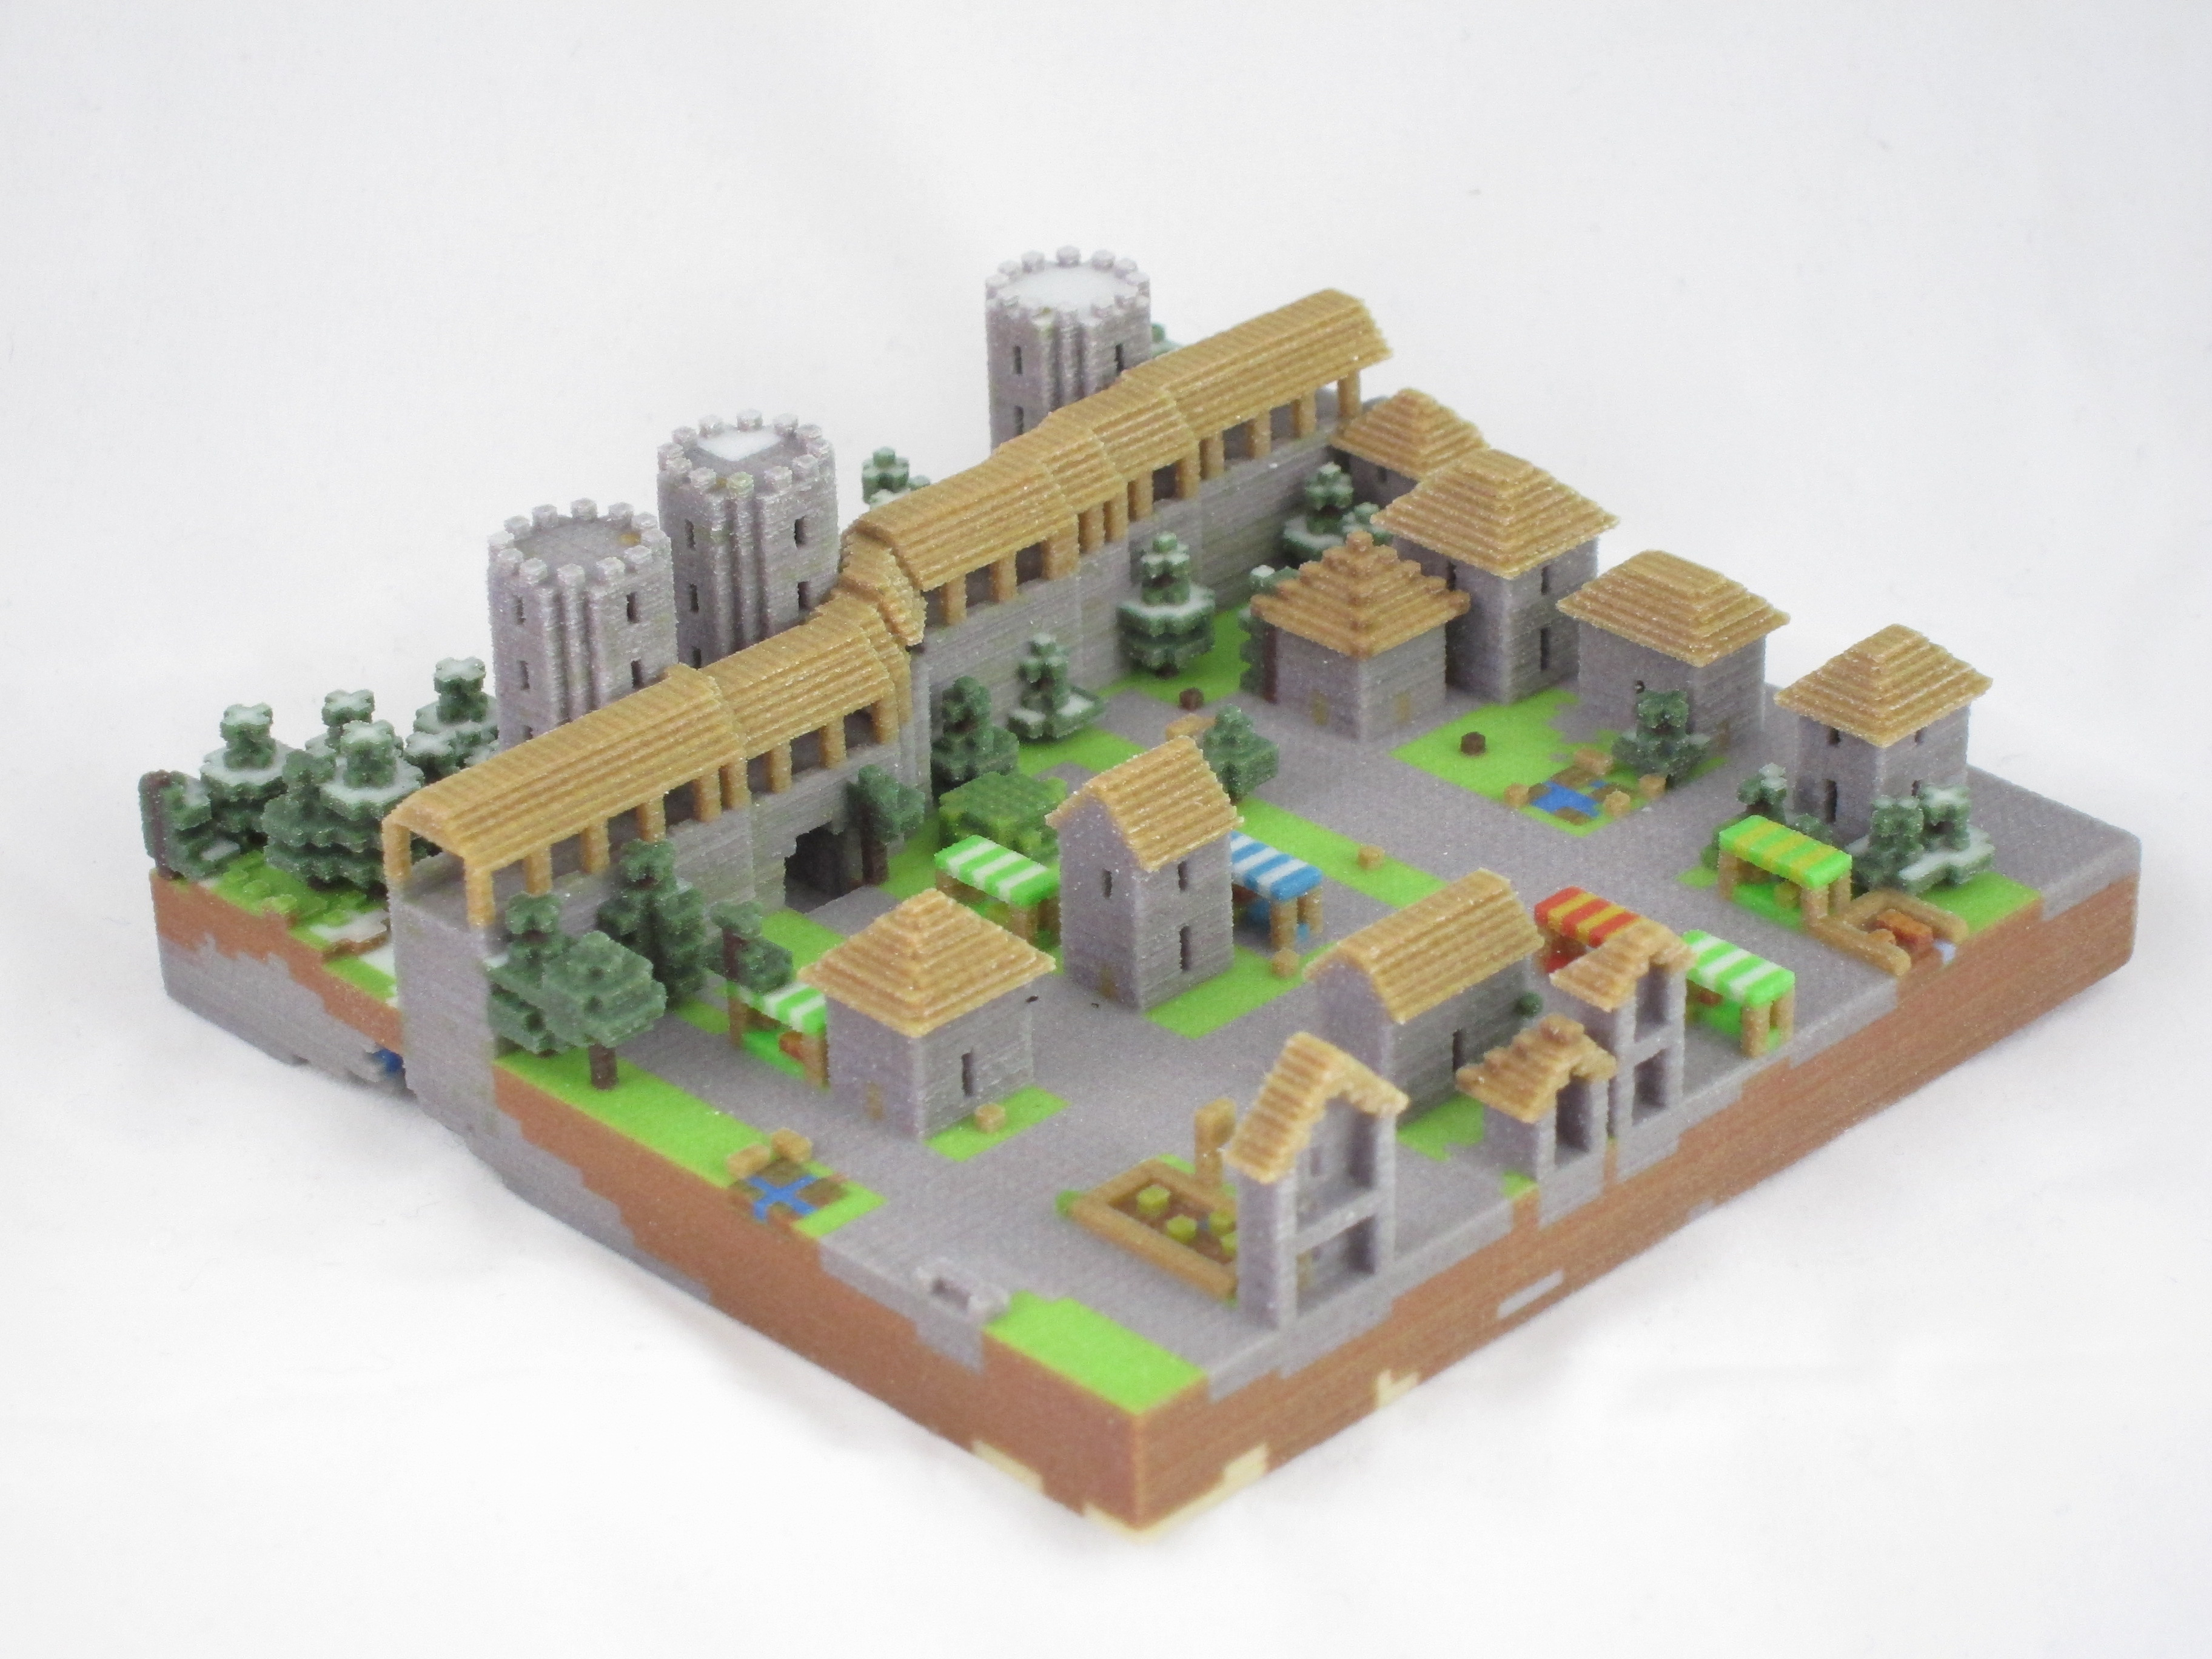 This is a graphic of Persnickety Minecraft Images for Printing